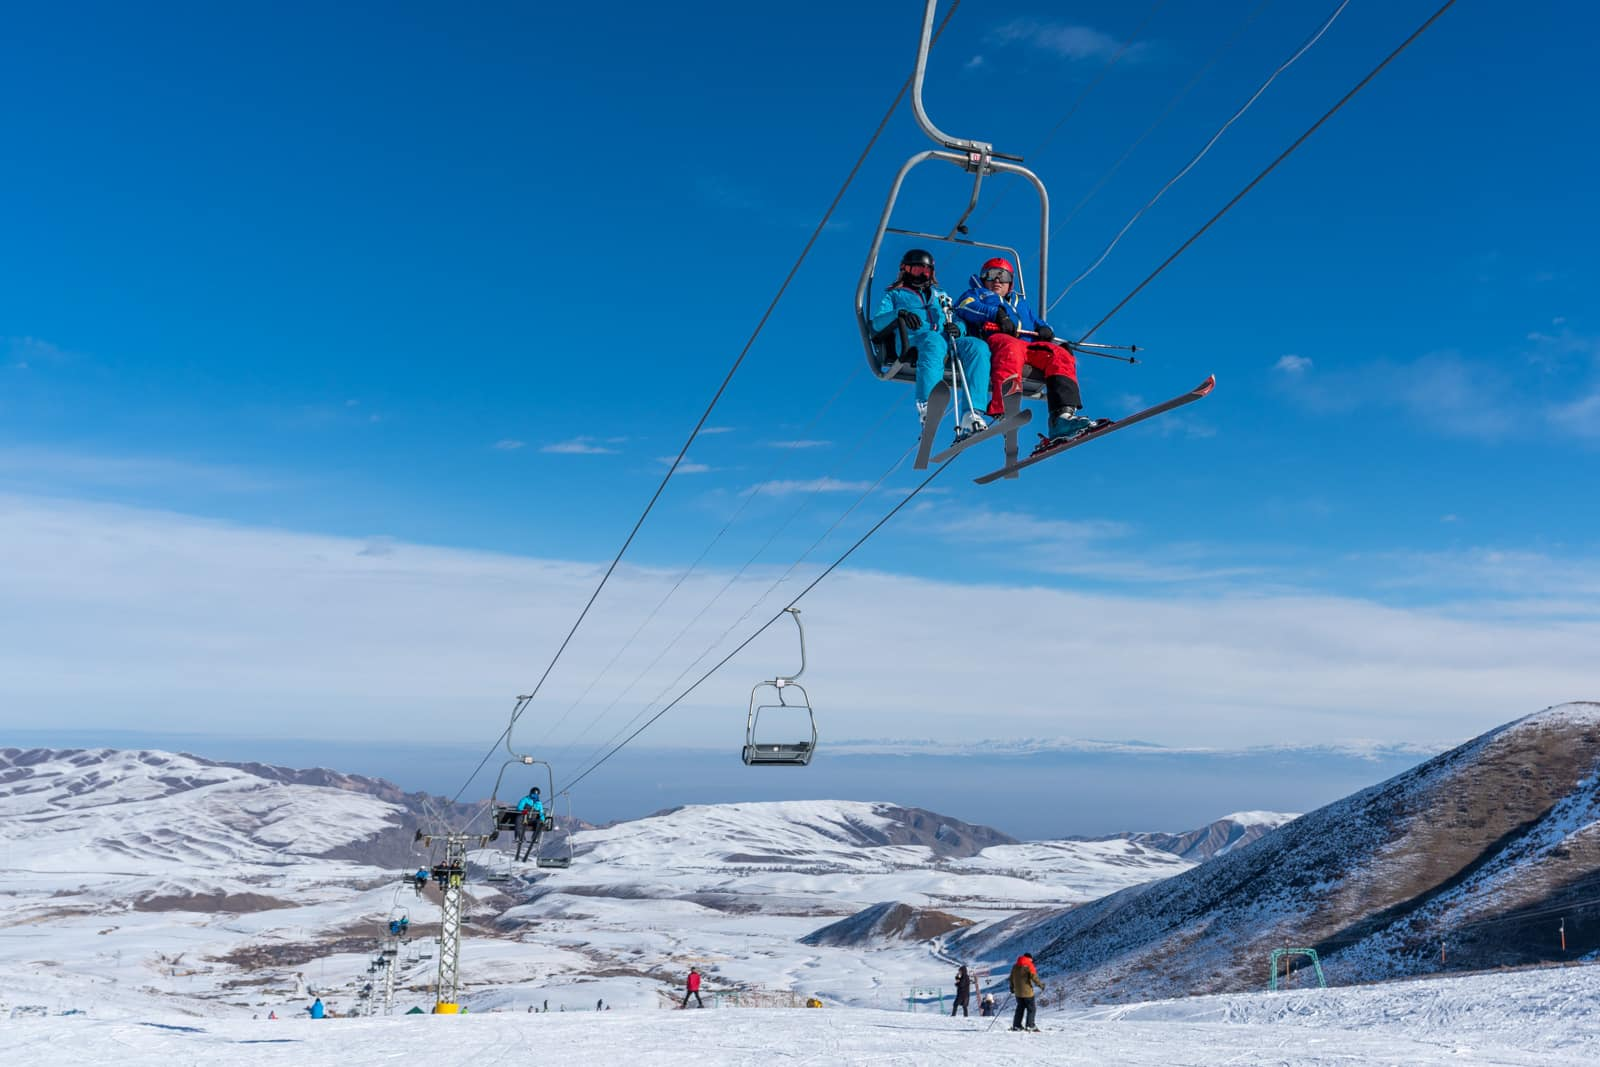 Skiers on a chairlift at ZIL ski base near Bishkek, Kyrgyzstan